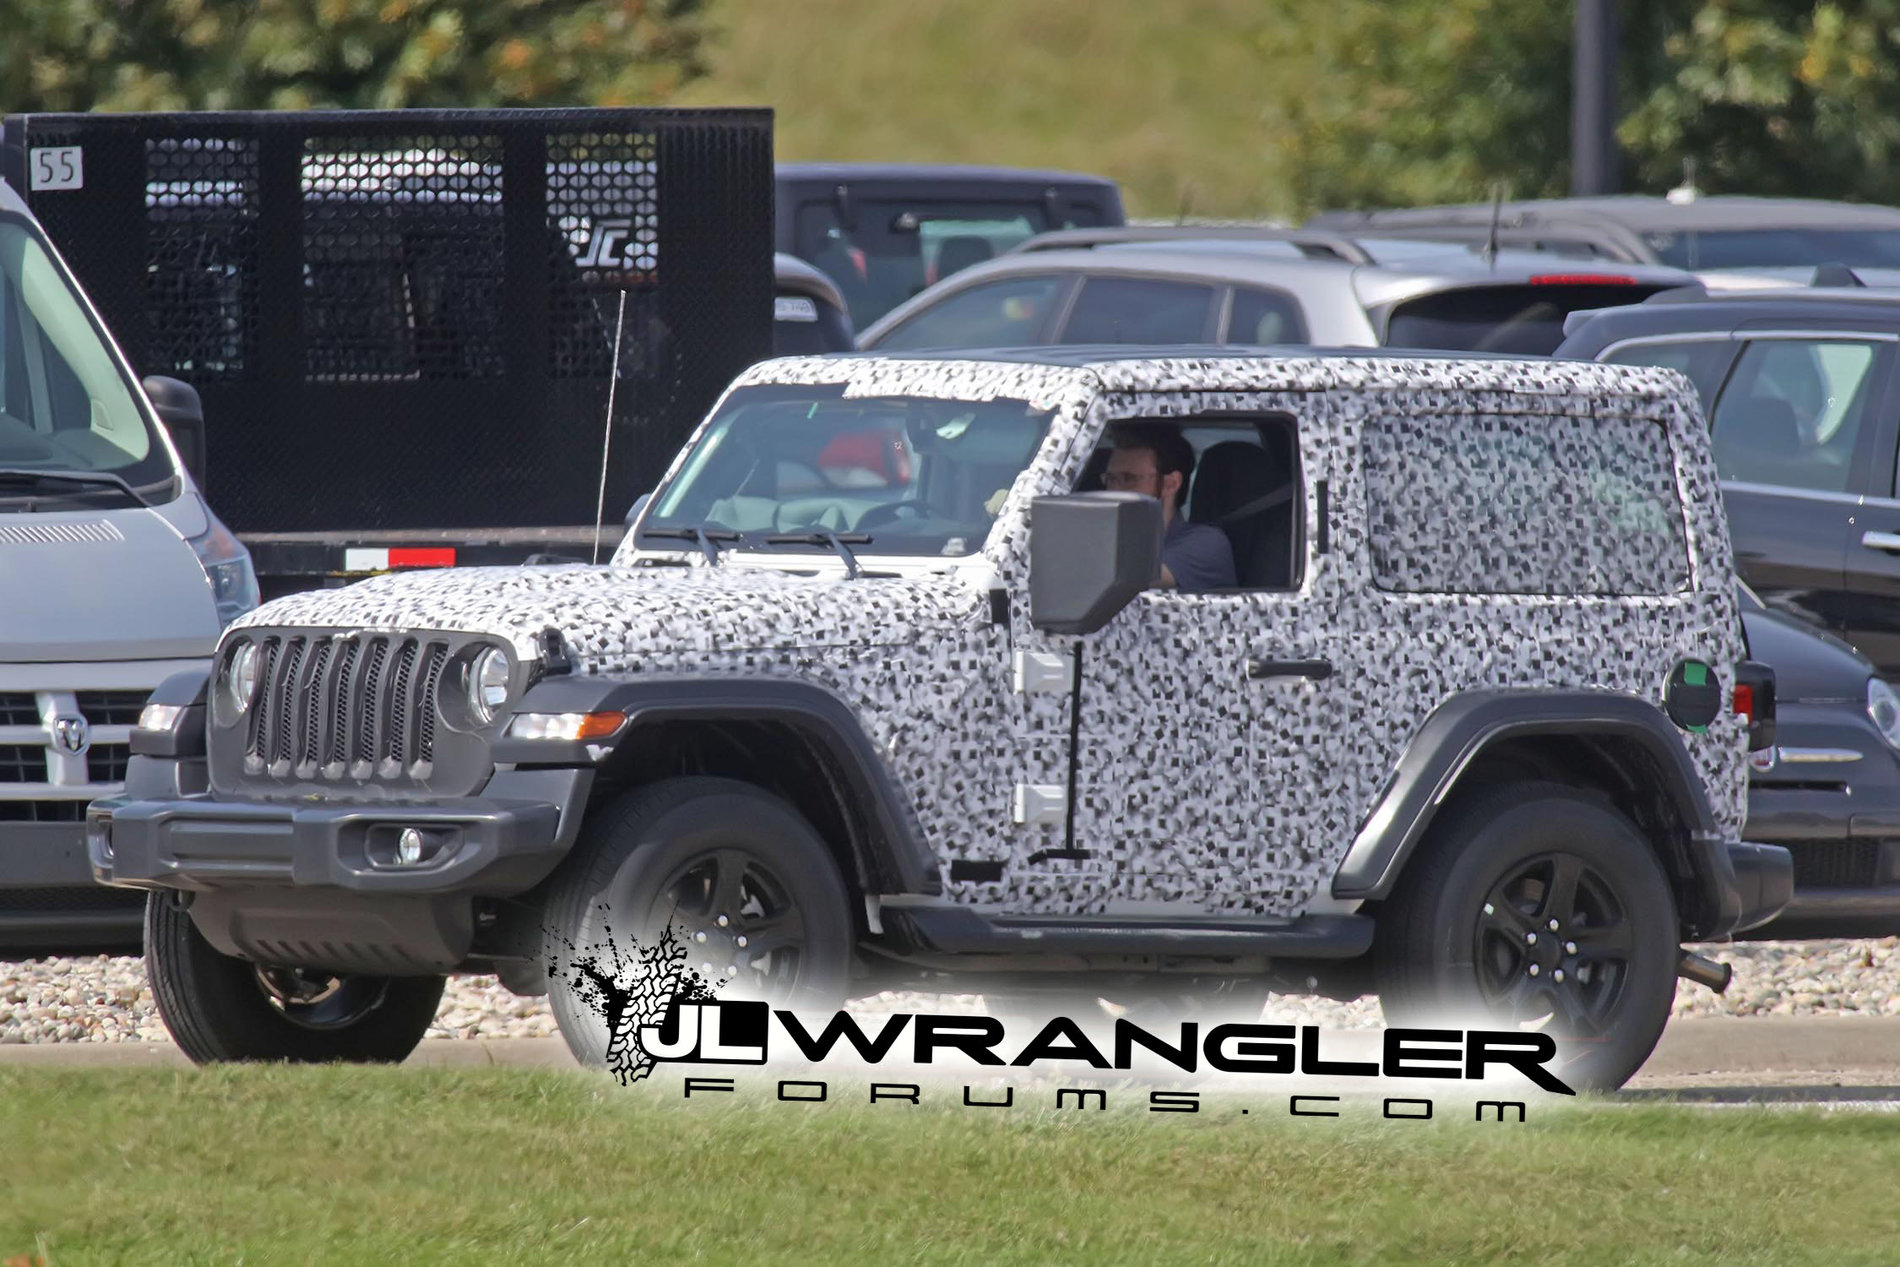 spied wrangler 2 door jl rubicon soft top and export jl sport hard top 2018 jeep wrangler. Black Bedroom Furniture Sets. Home Design Ideas